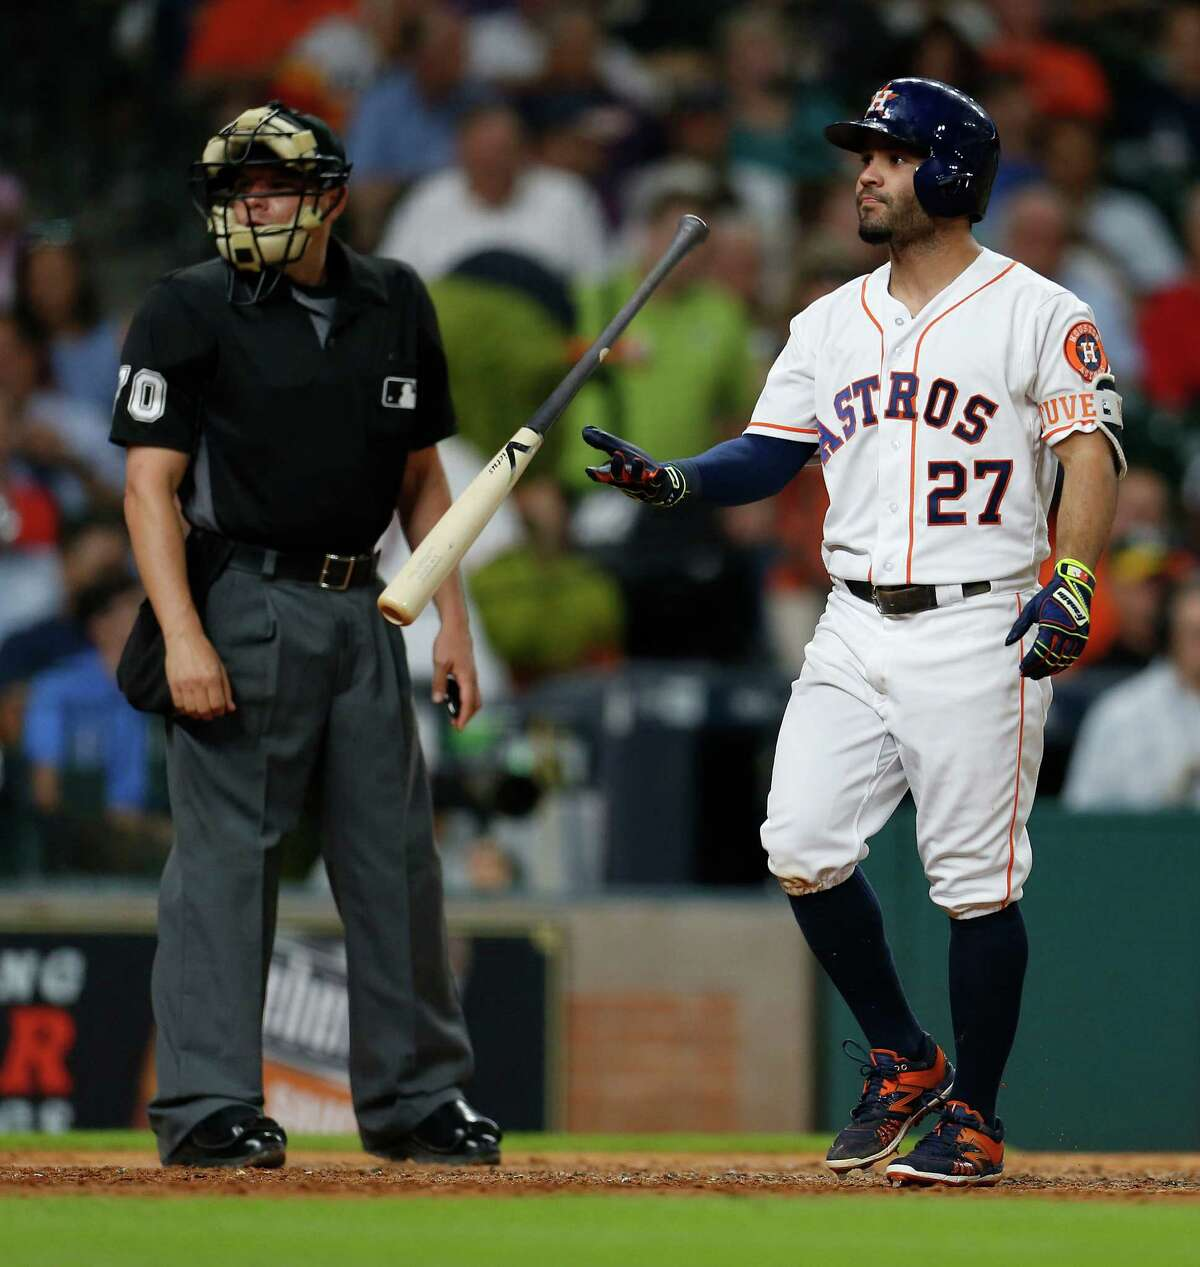 July 7: Athletics 3, Astros 1 Houston Astros Jose Altuve (27) reacts after striking out during the sixth inning of an MLB baseball game at Minute Maid Park, Thursday, July 7, 2016, in Houston.